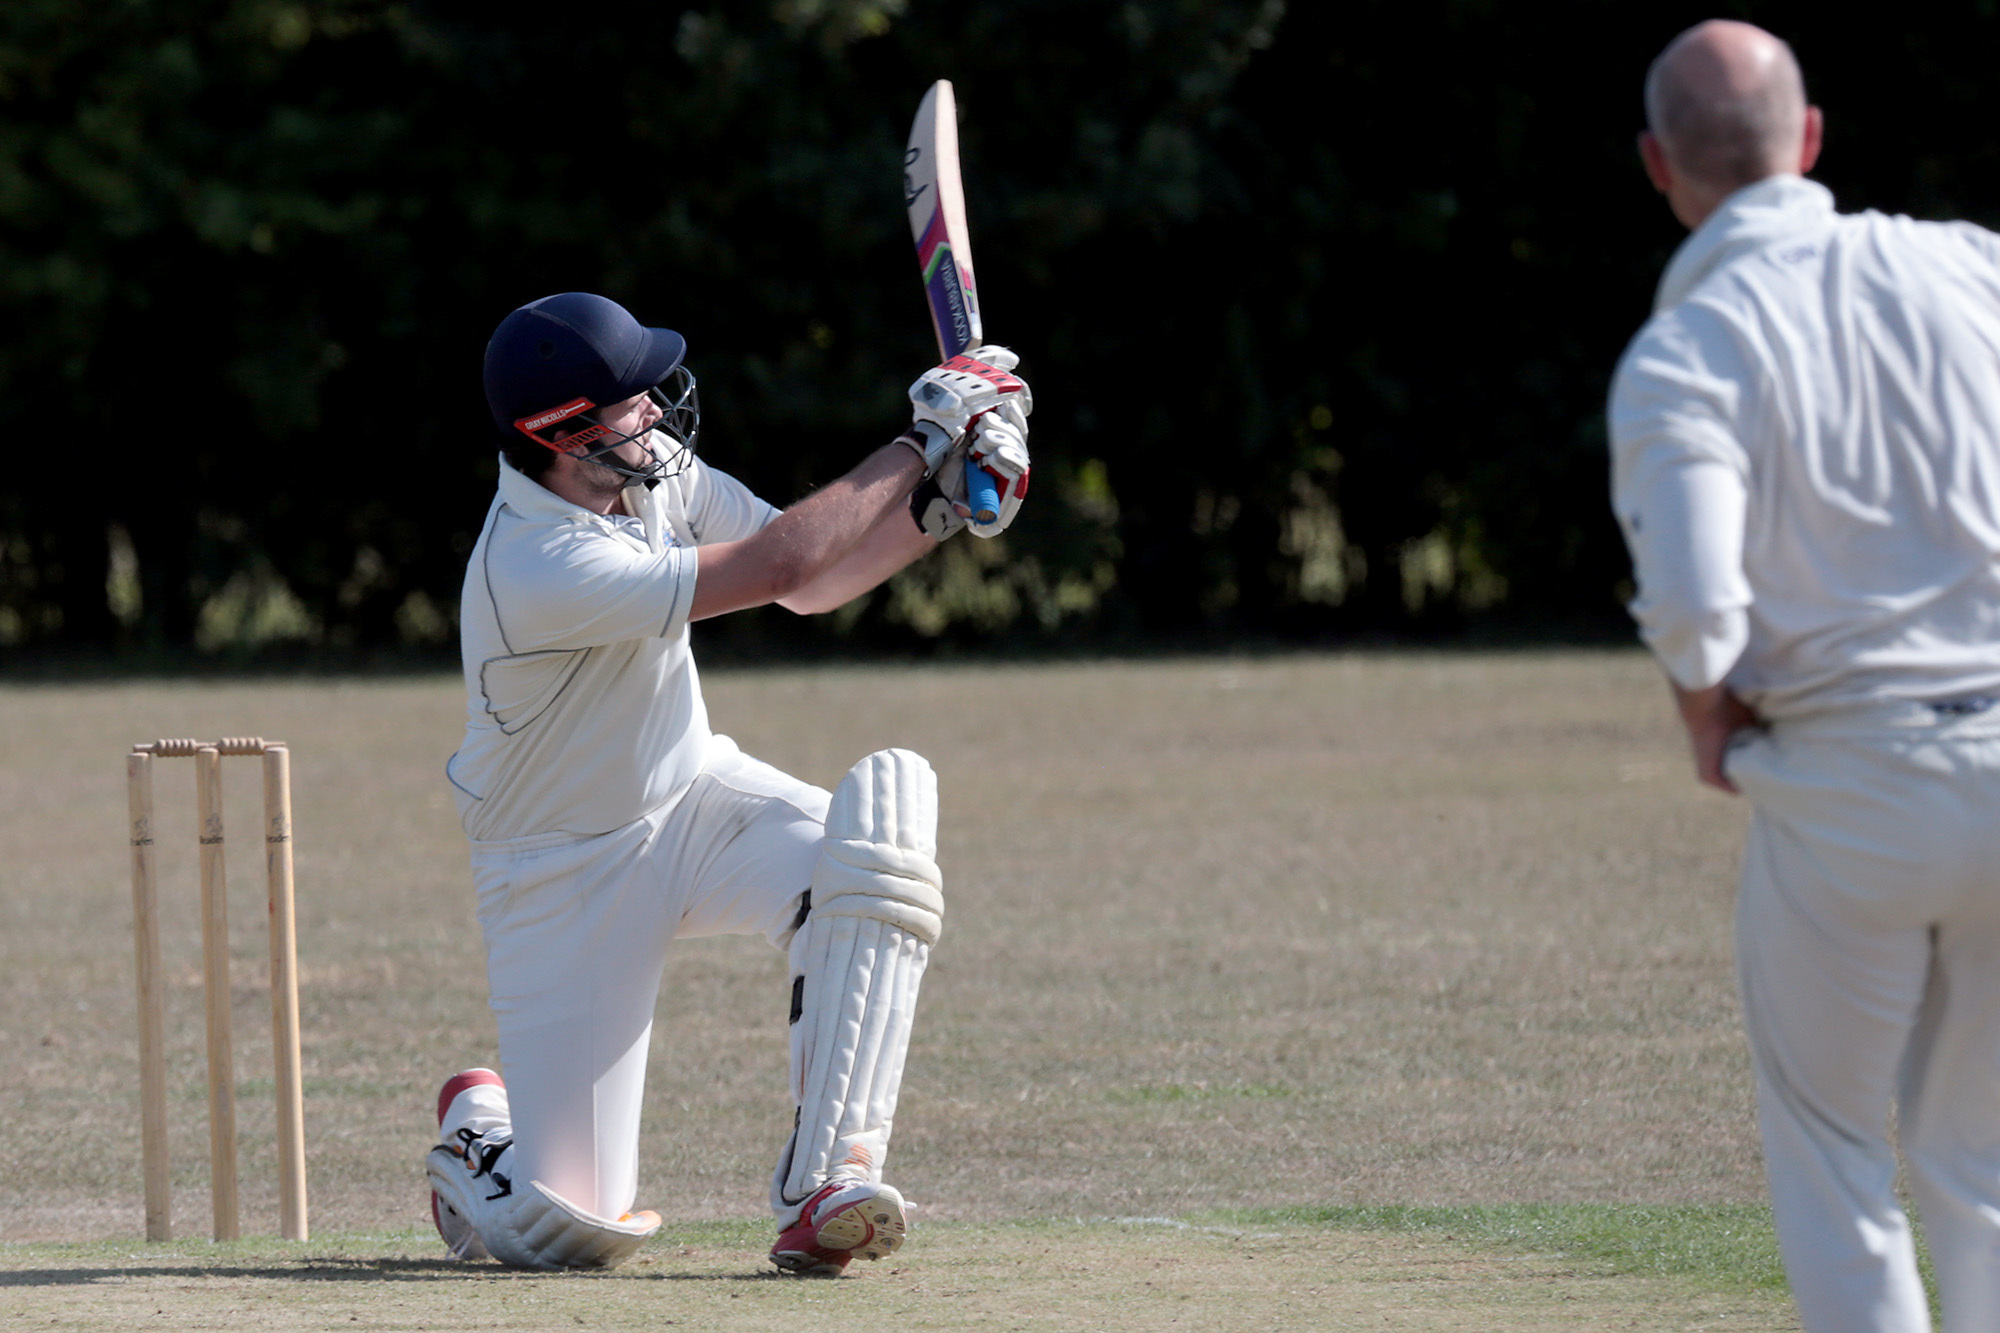 TON-UP: Bampton's Ben Ives hits out on his way to an unbeaten 112 against West Ilsley,   Picture: Ric Mellis